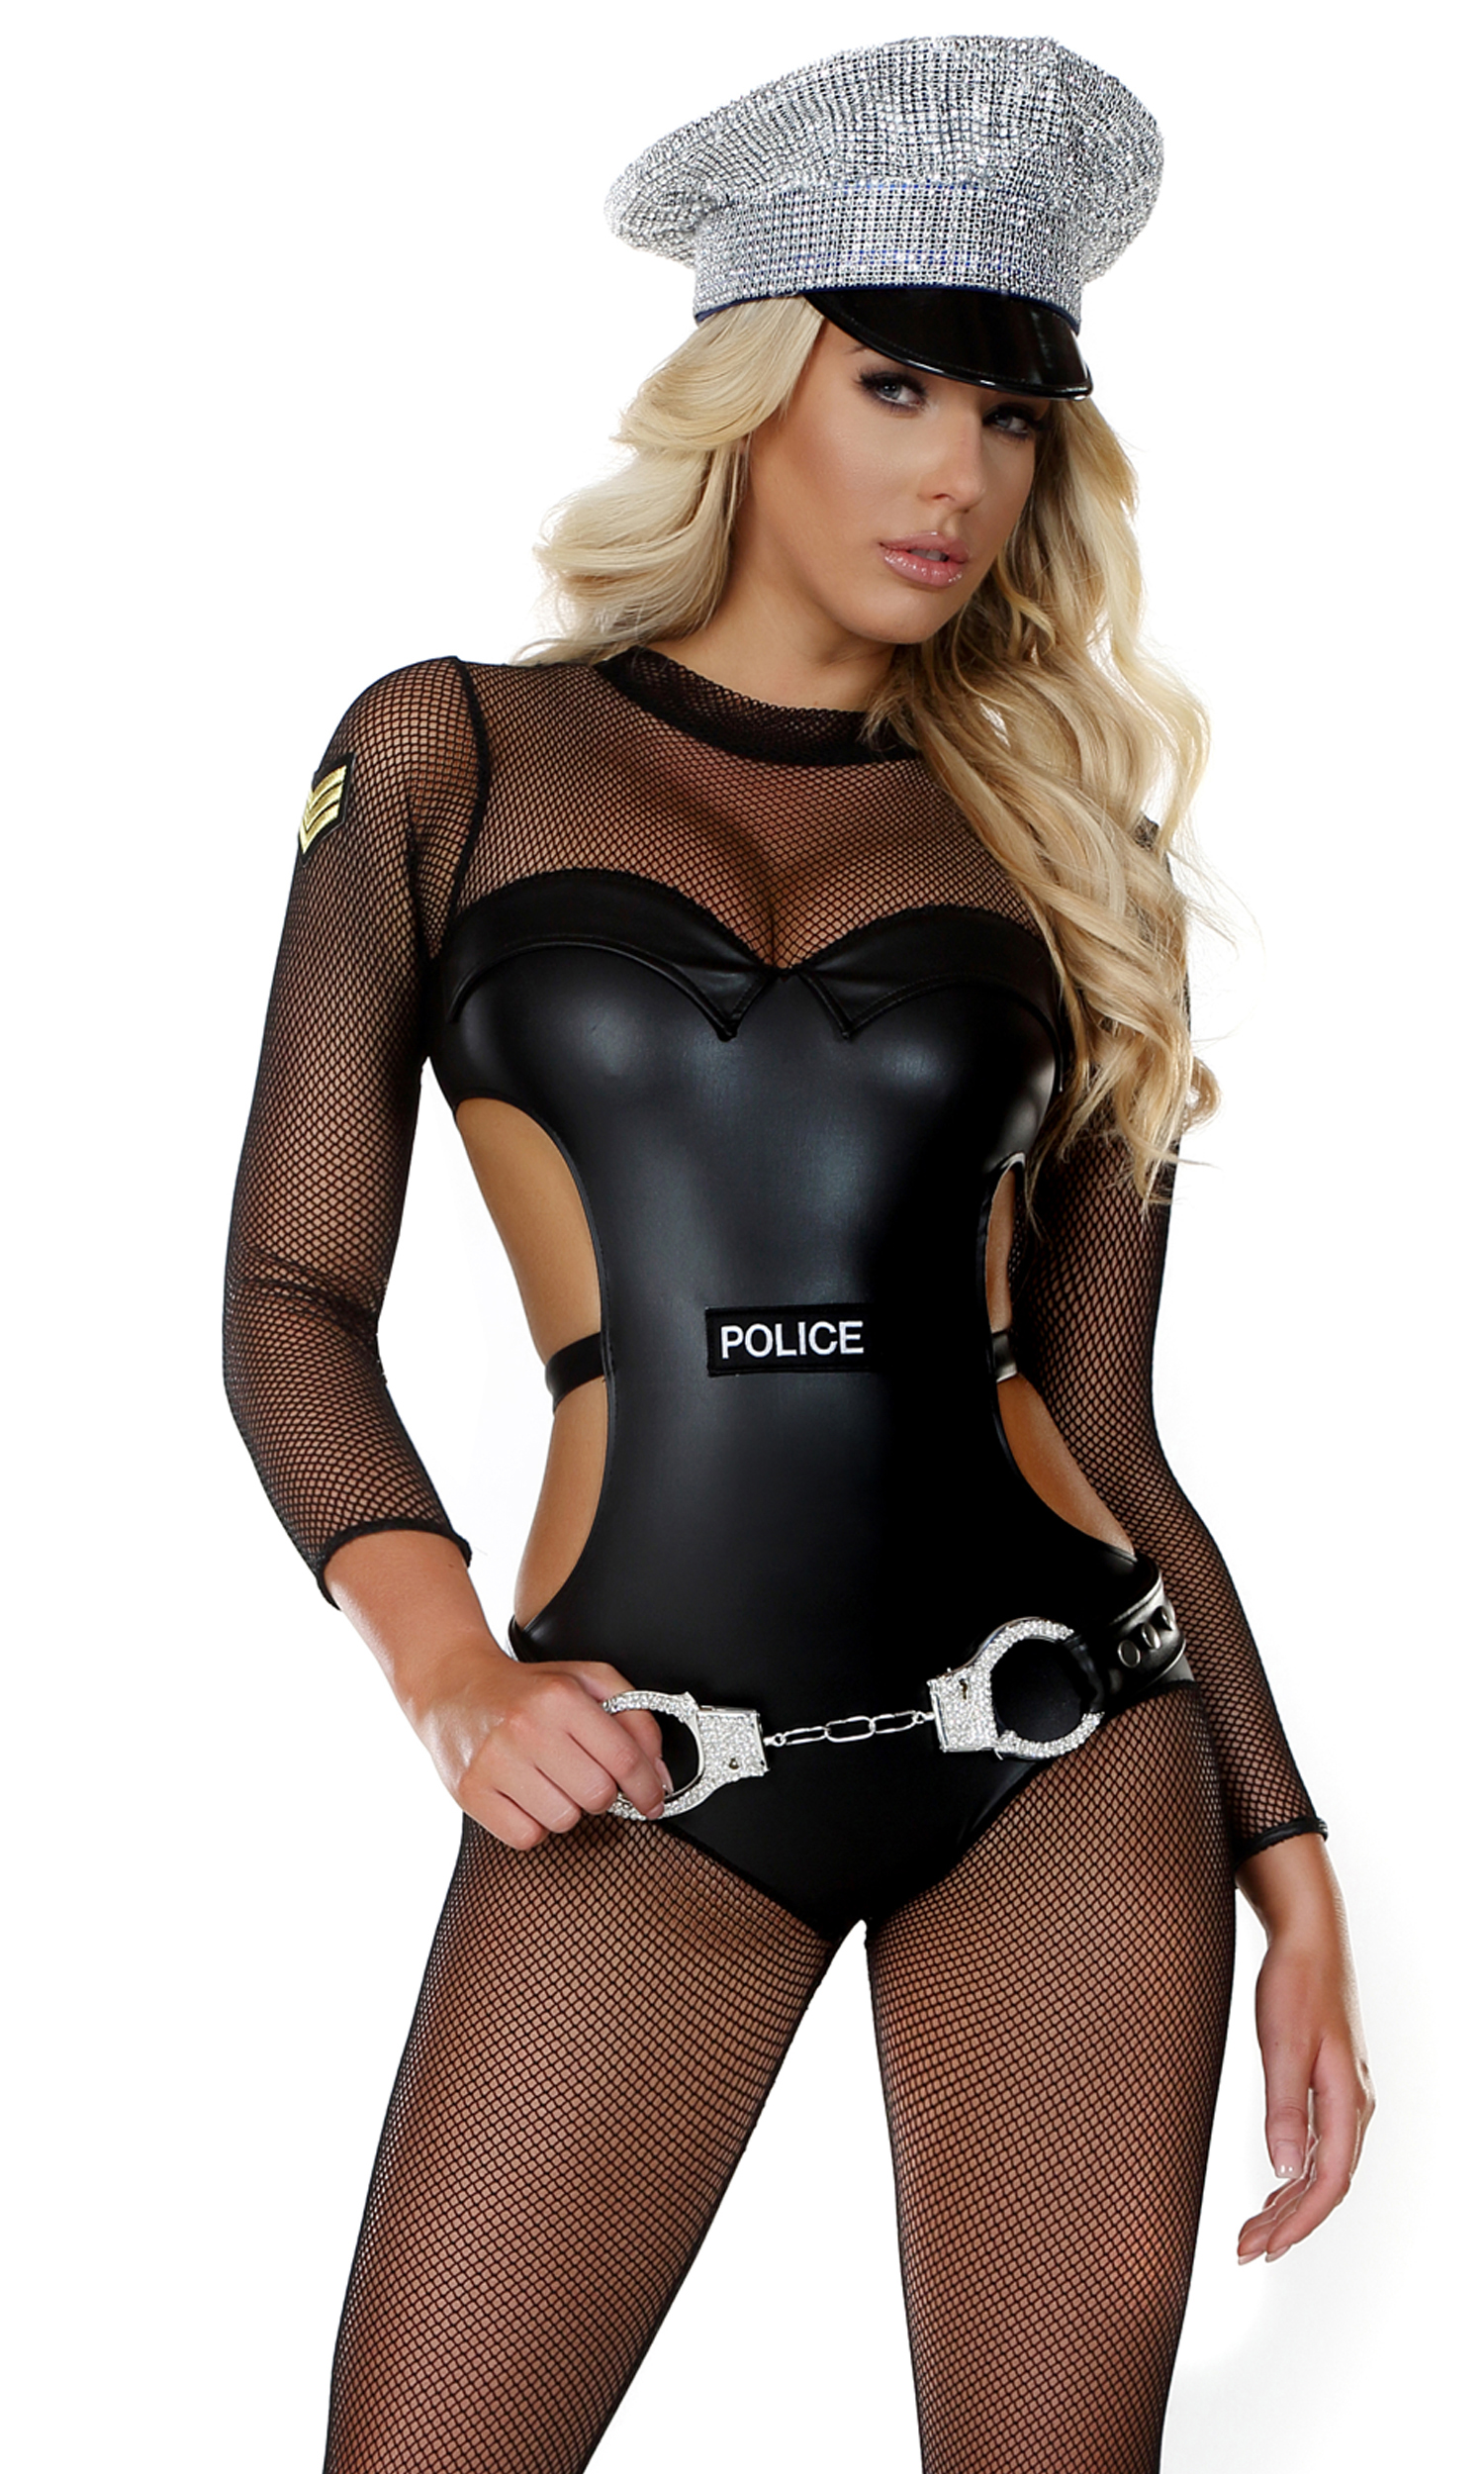 Sexy officer costumes